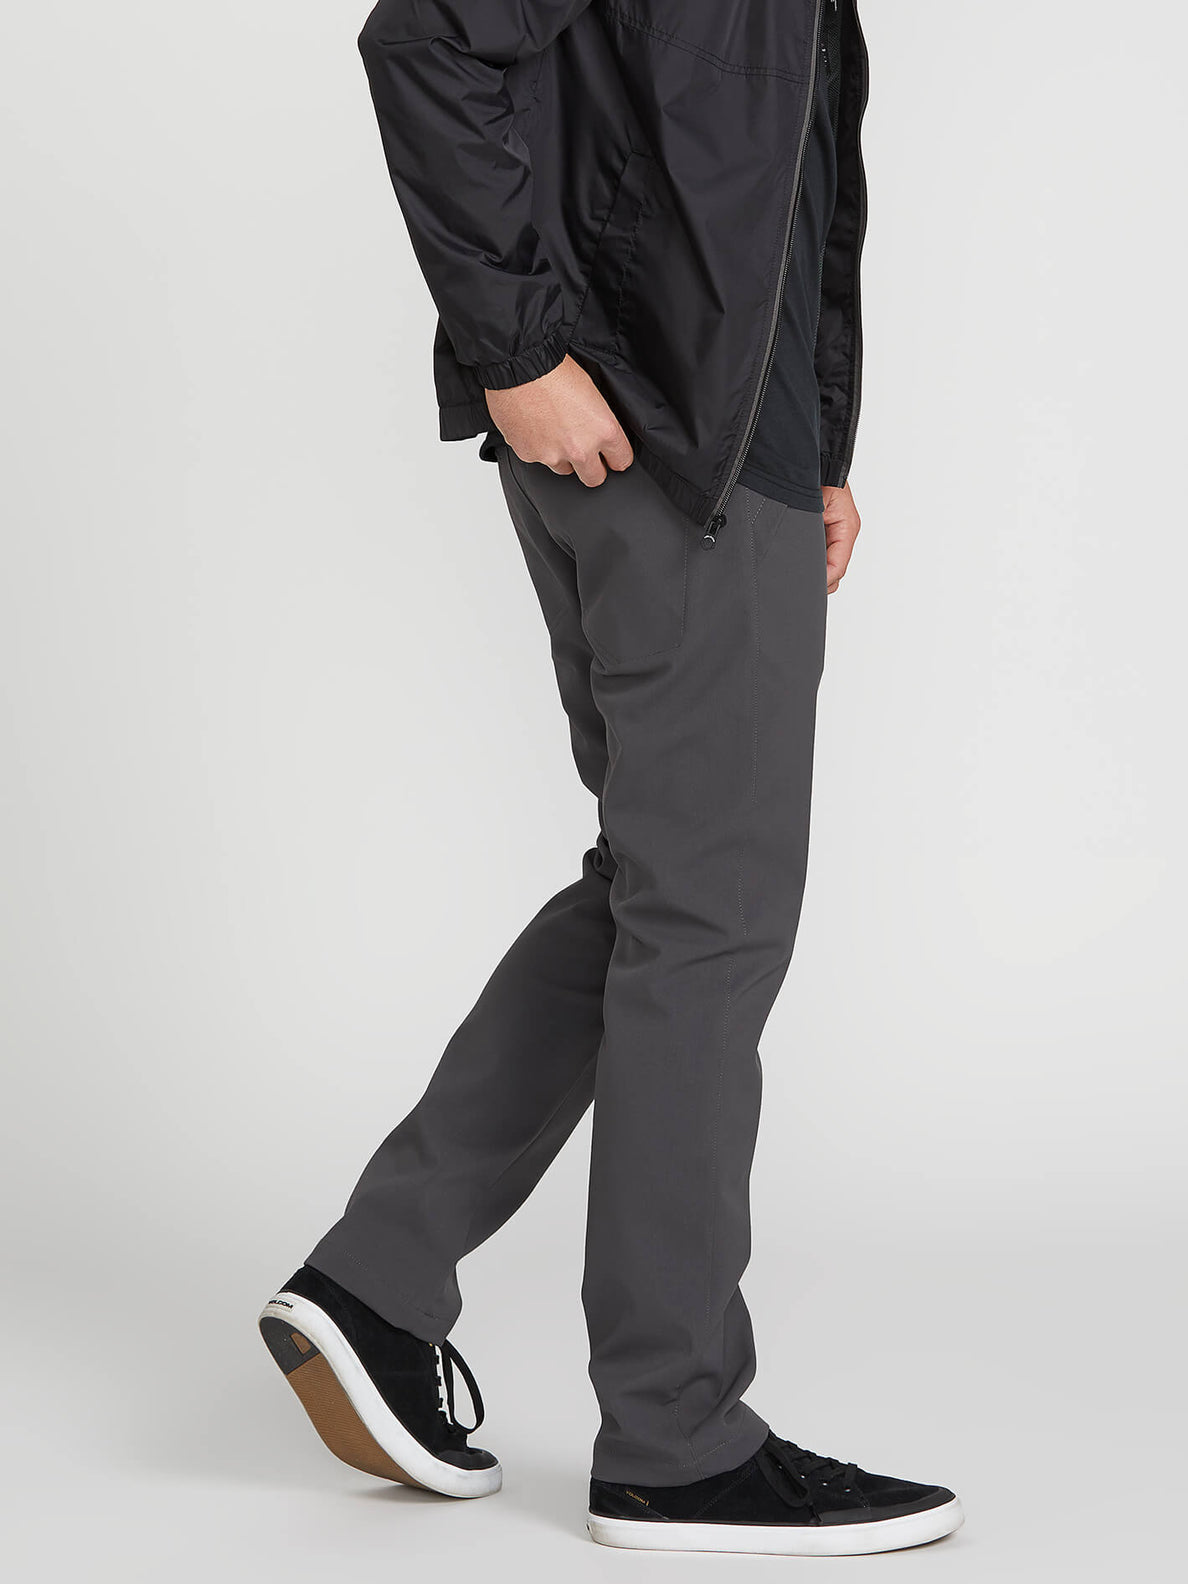 Everweather Pants - Asphalt Black (A1131900_ASB) [3]